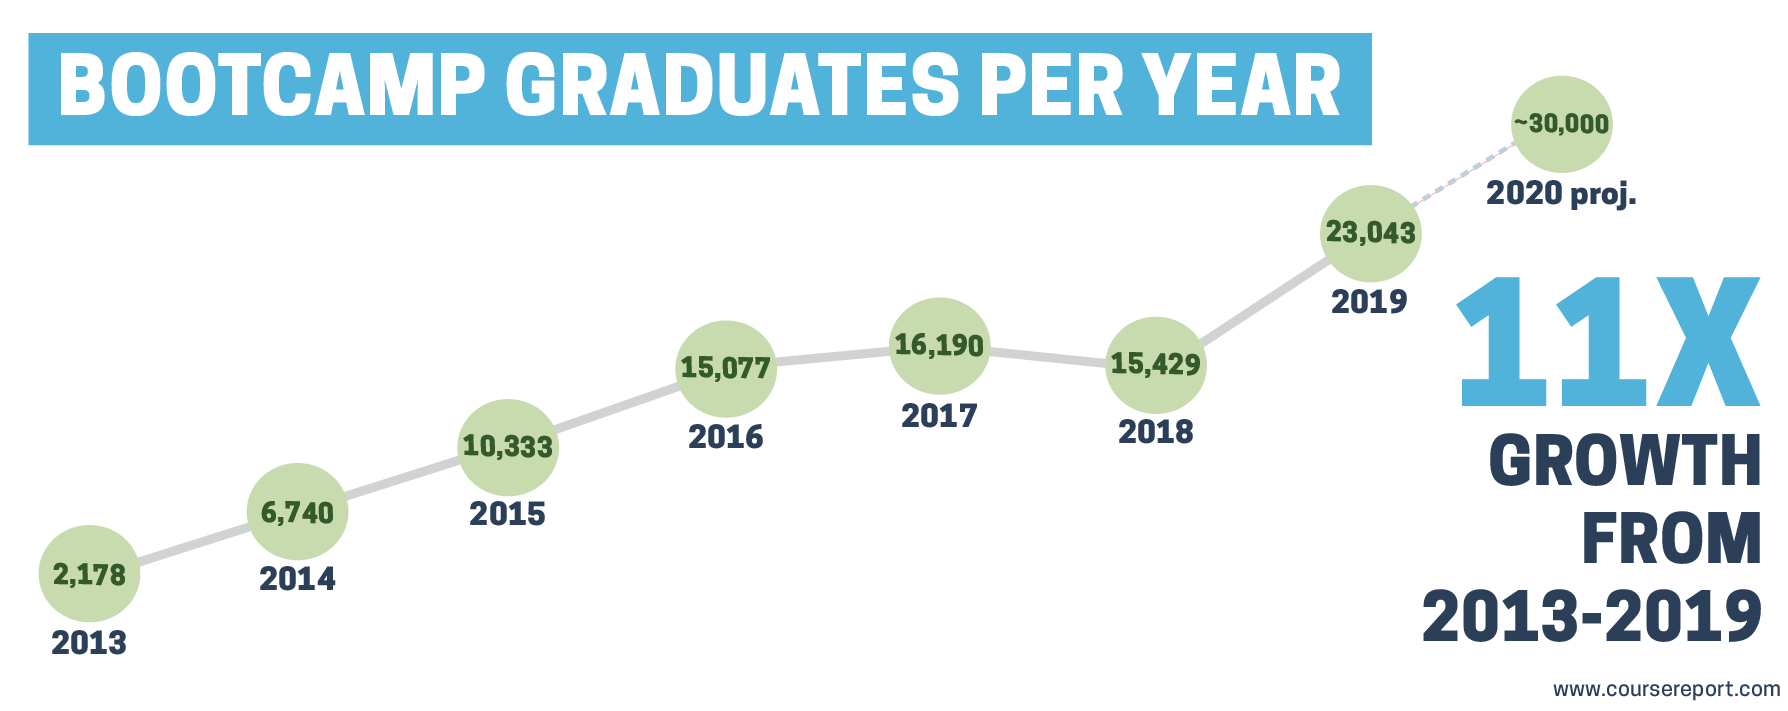 bootcamp-graduates-per-year-graph